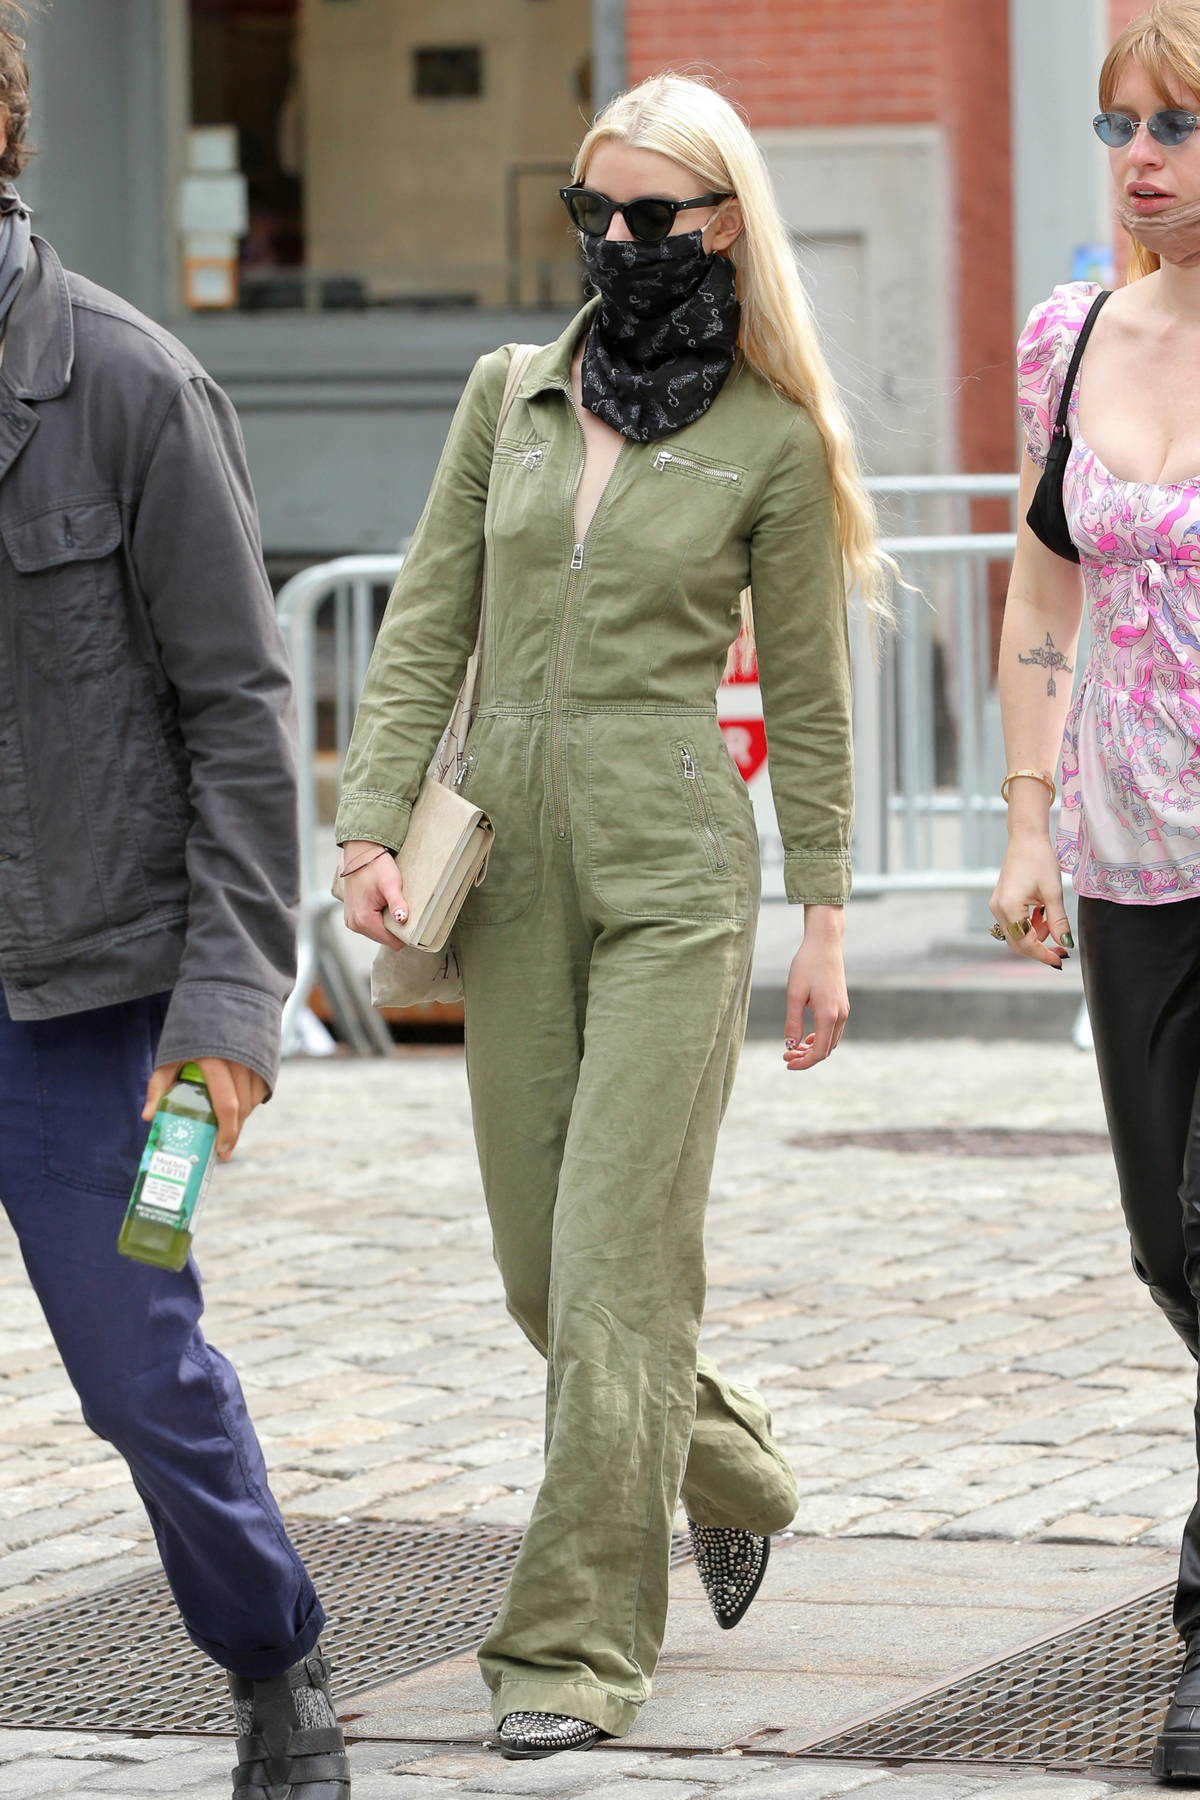 Anya Taylor-Joy steps out in green denim jumpsuit while making a coffee run with a friend in New York City